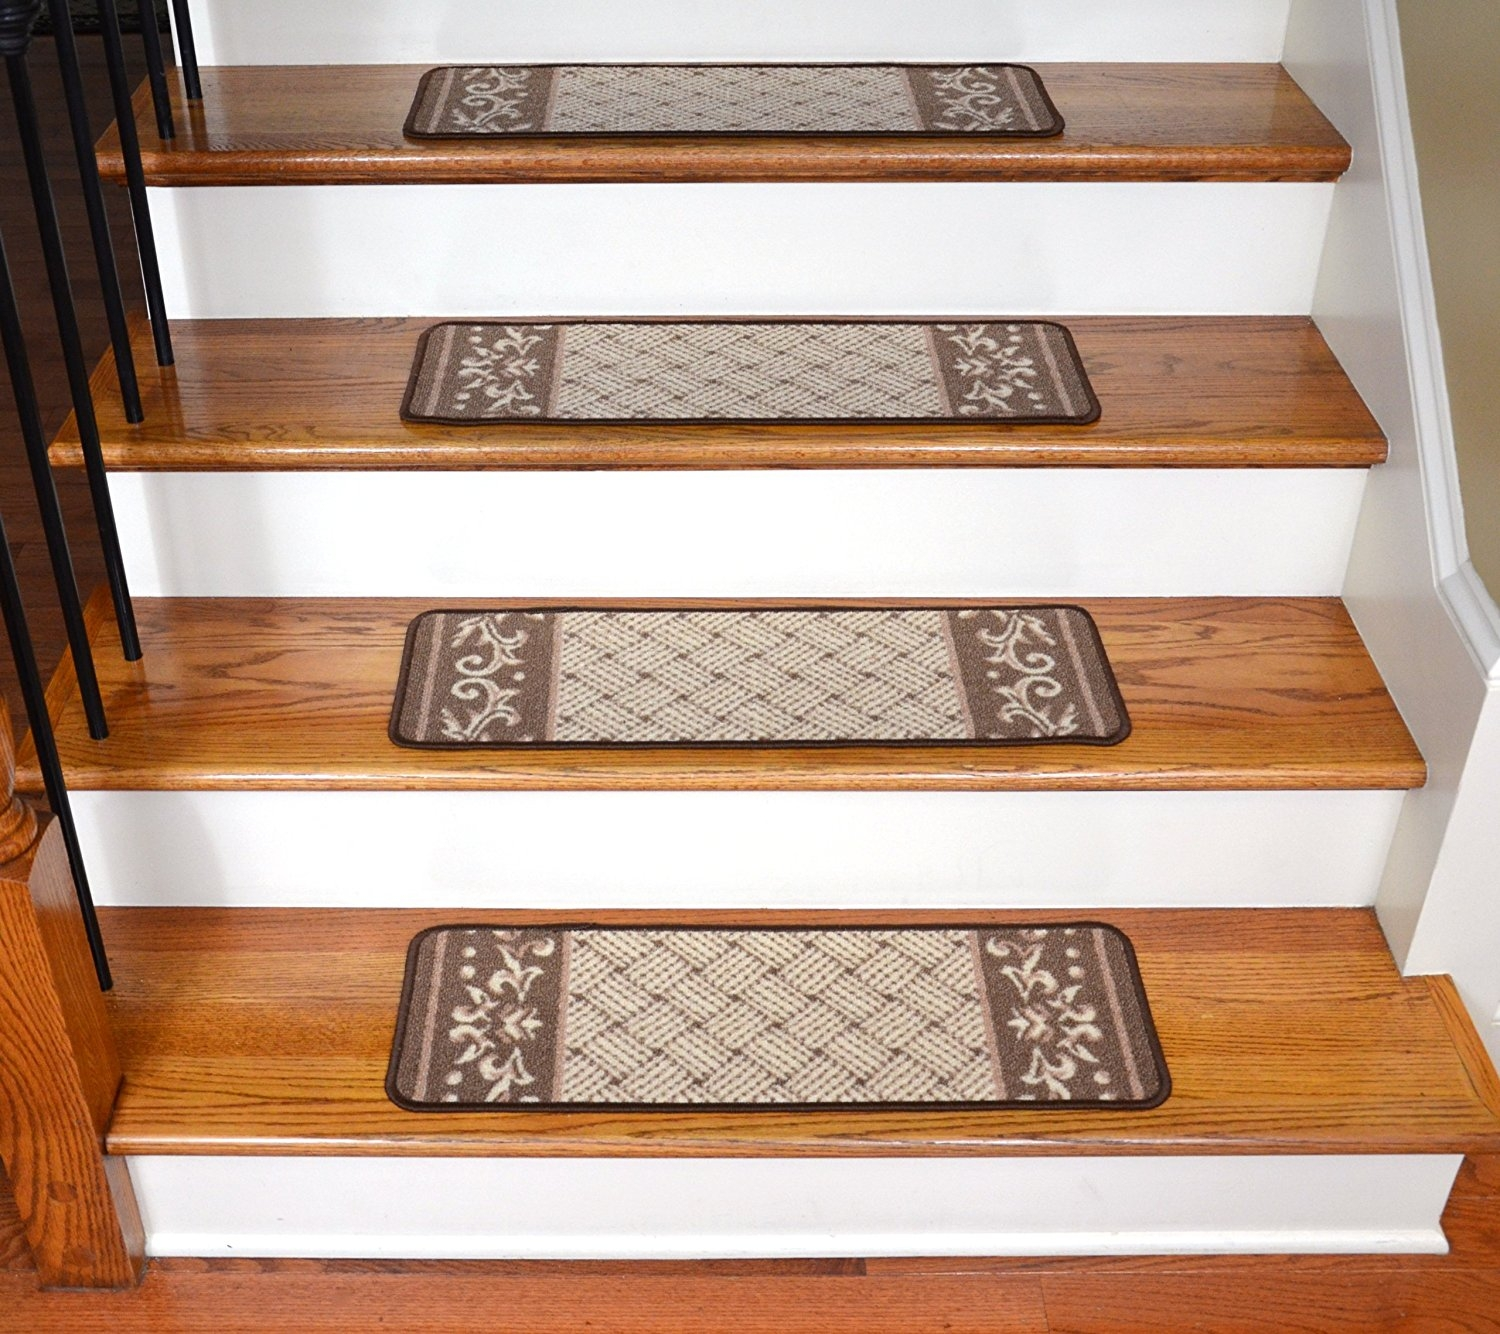 Amazon Carpet Stair Treads Caramel Scroll Border Pertaining To Stair Tread Rugs For Carpet (Image 1 of 15)